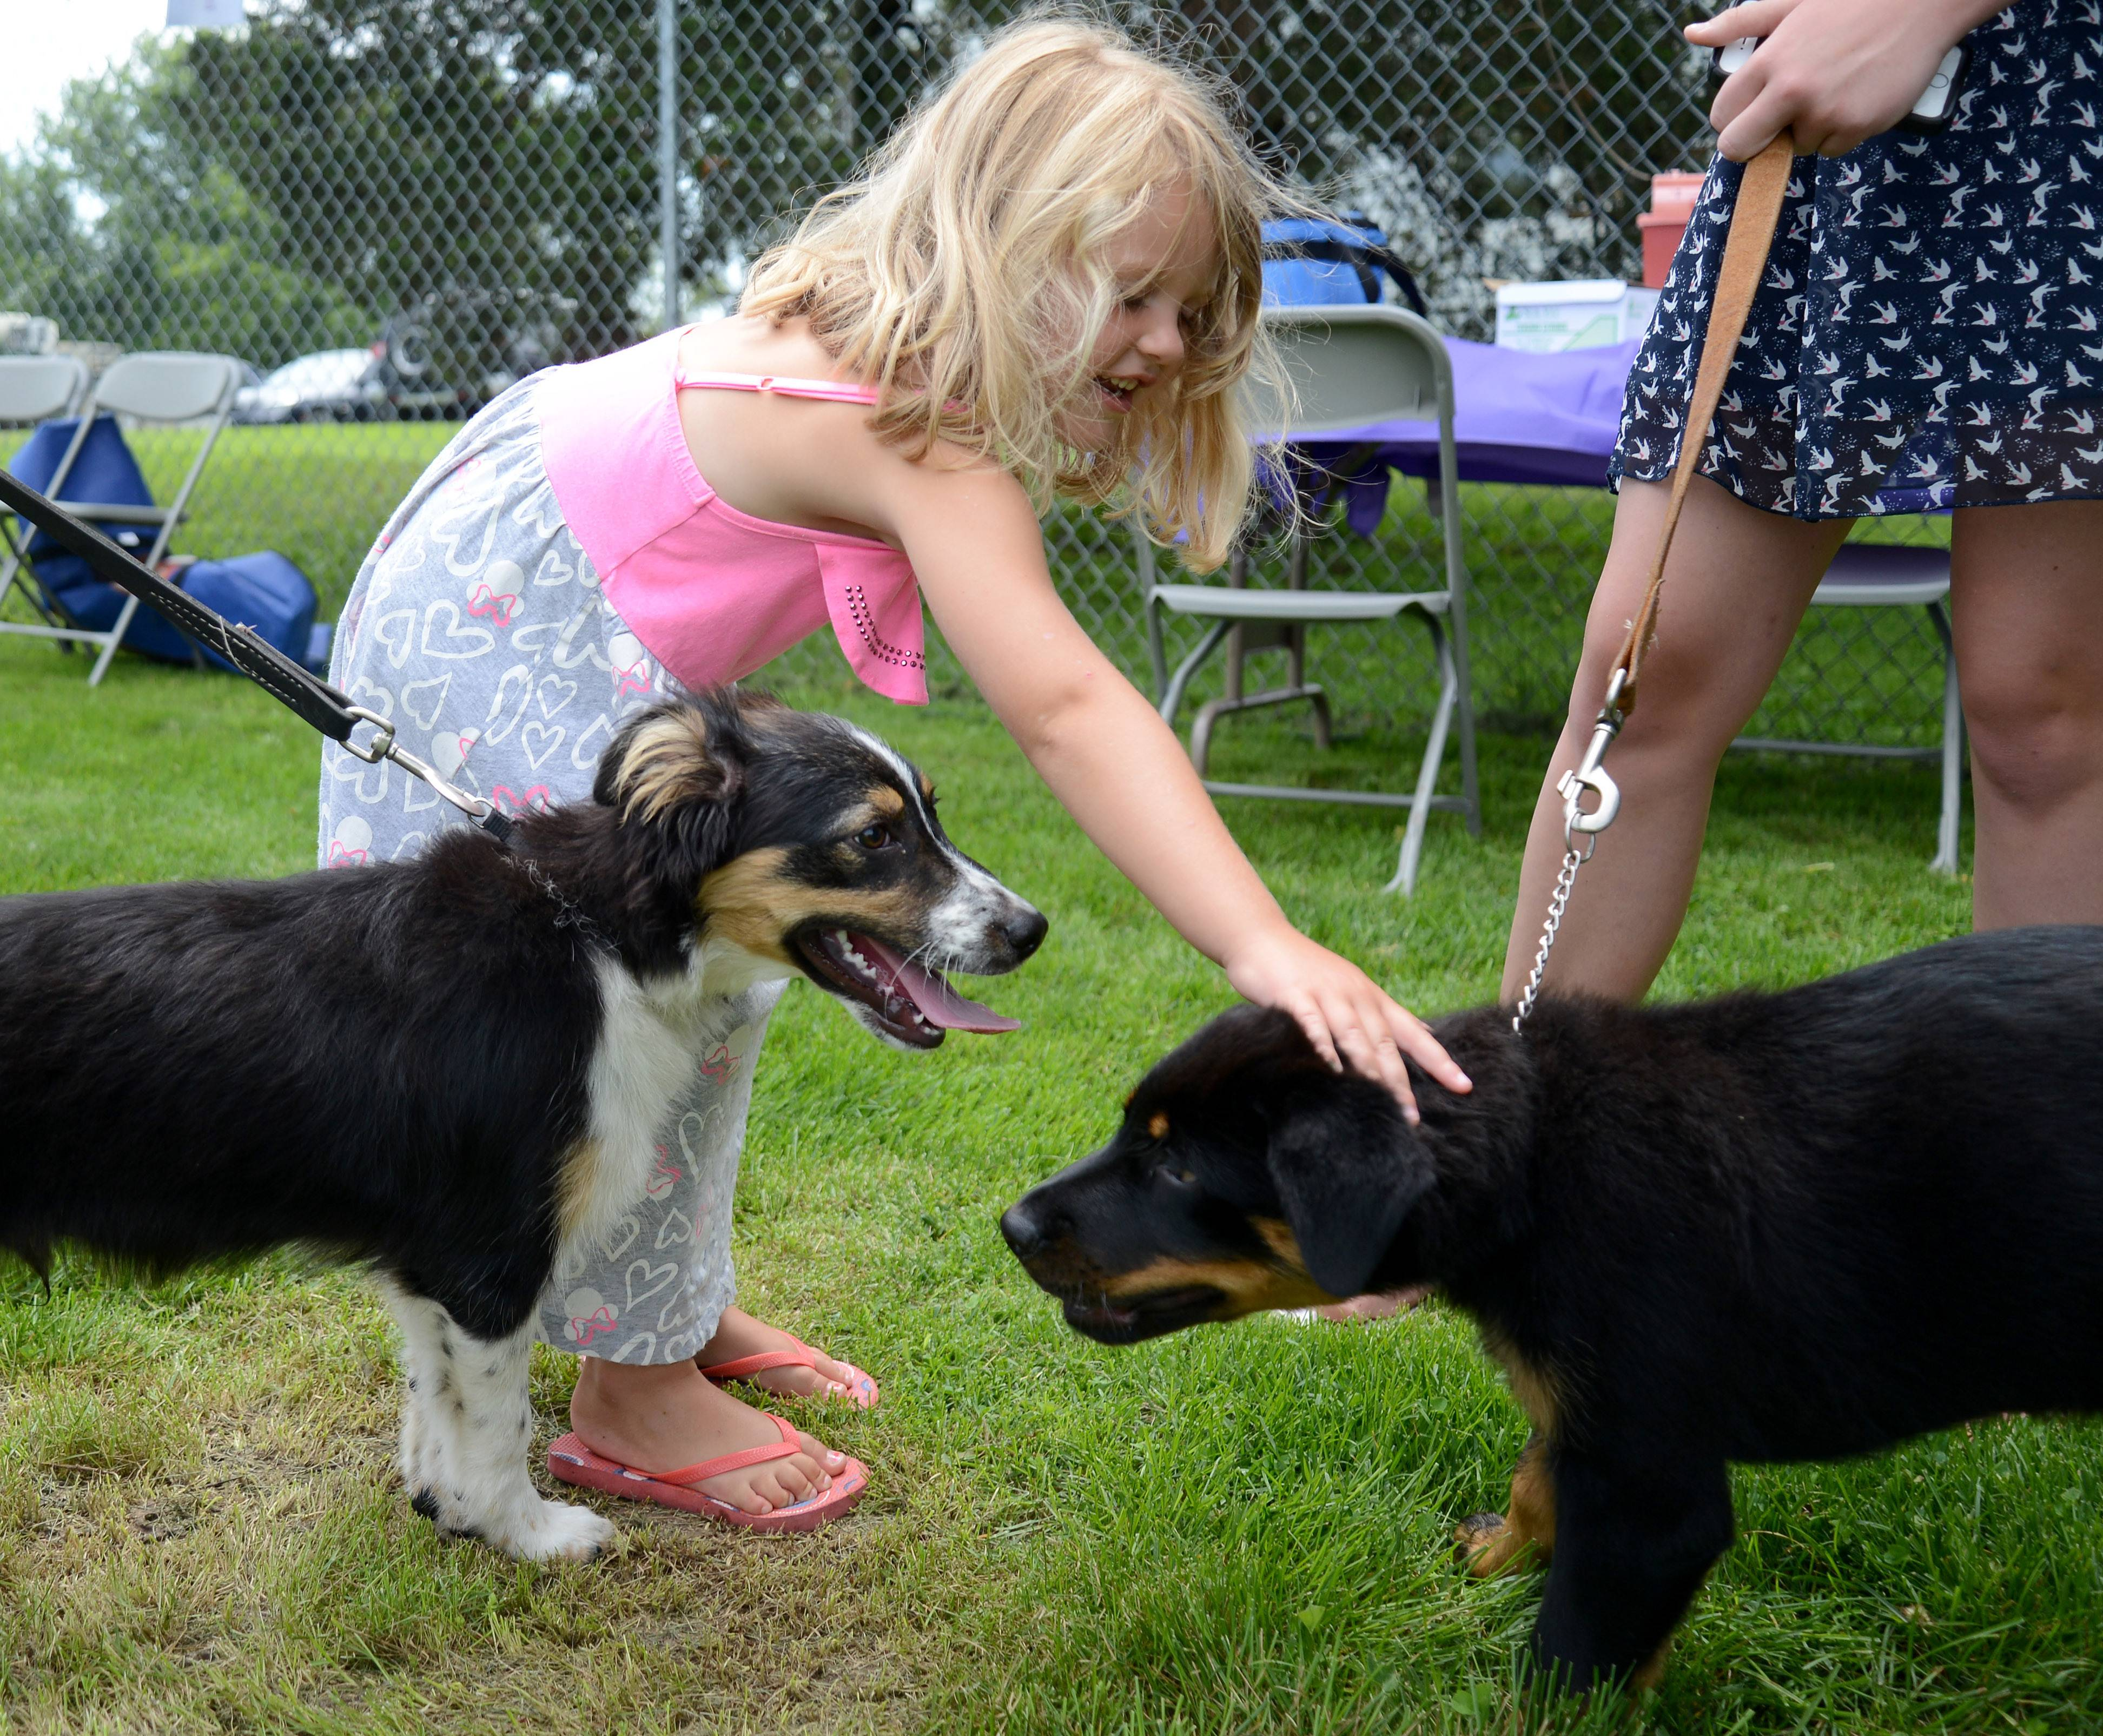 Brooklin Scheleski, 4, of Huntley and her puppy Brewster, left, meet Porscha the puppy owned by Julie Hirsch of Pingree Grove while they wait in line to be microchipped at PAWFest at Animal House Shelter in Huntley Saturday. Microchipping, vaccinations and distemper shots were offered at discounted prices.